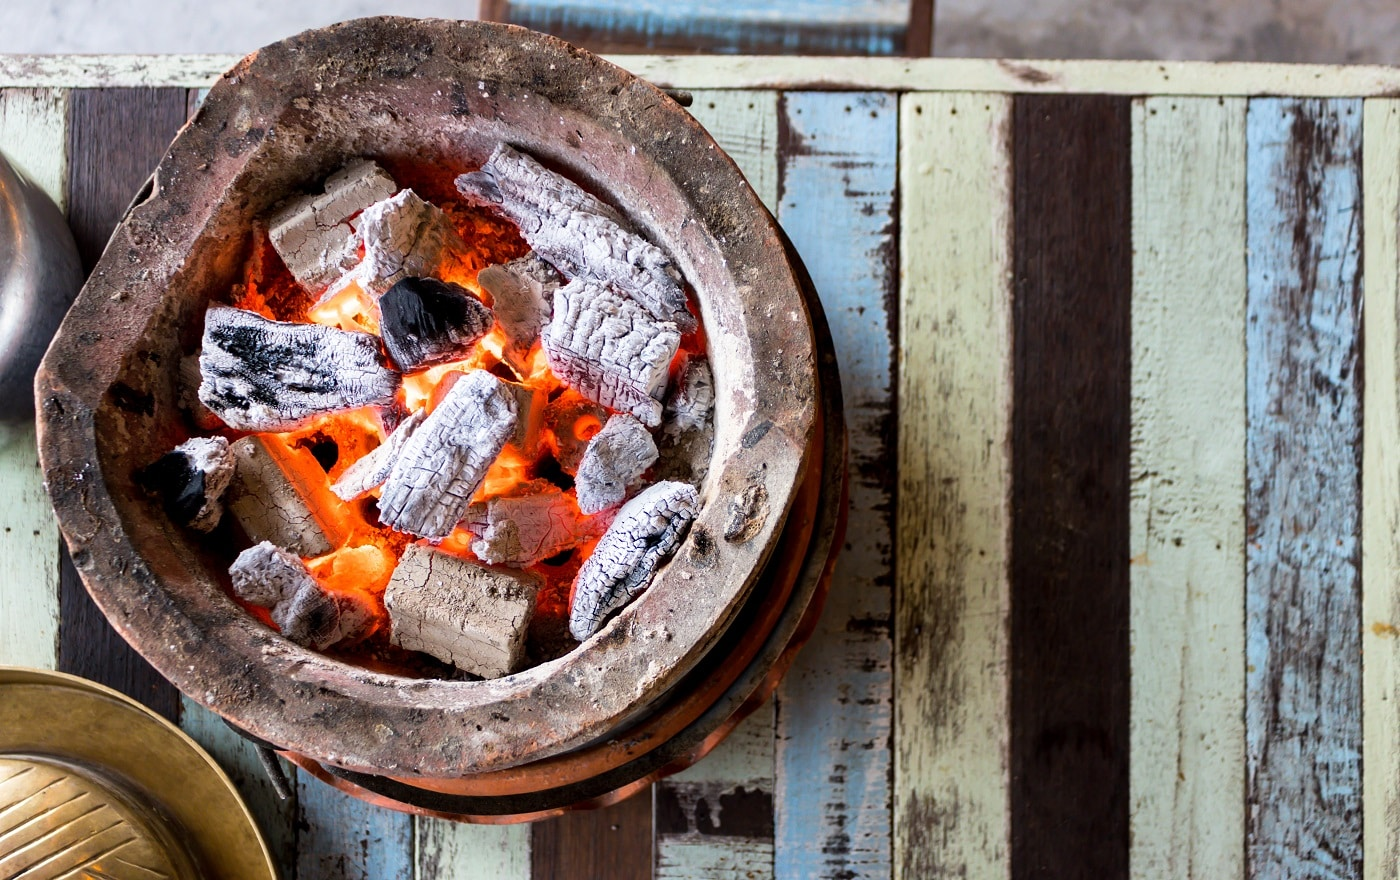 Burning charcoal with flame in the baked clay stove on the wooden table